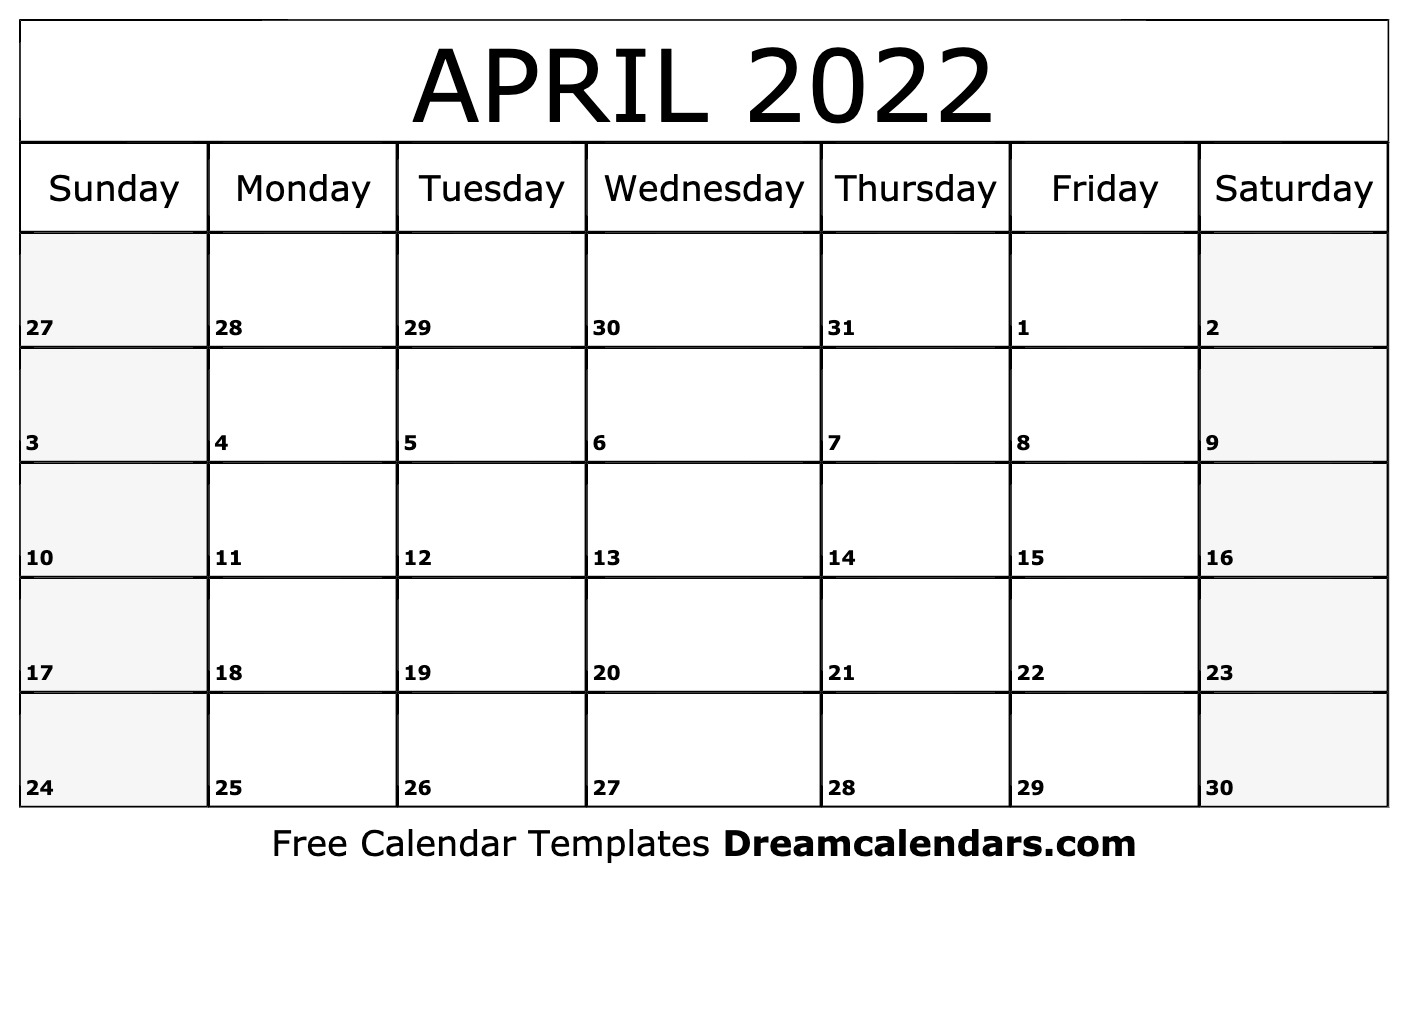 photograph relating to 2022 Calendar Printable known as Printable April 2022 Calendar